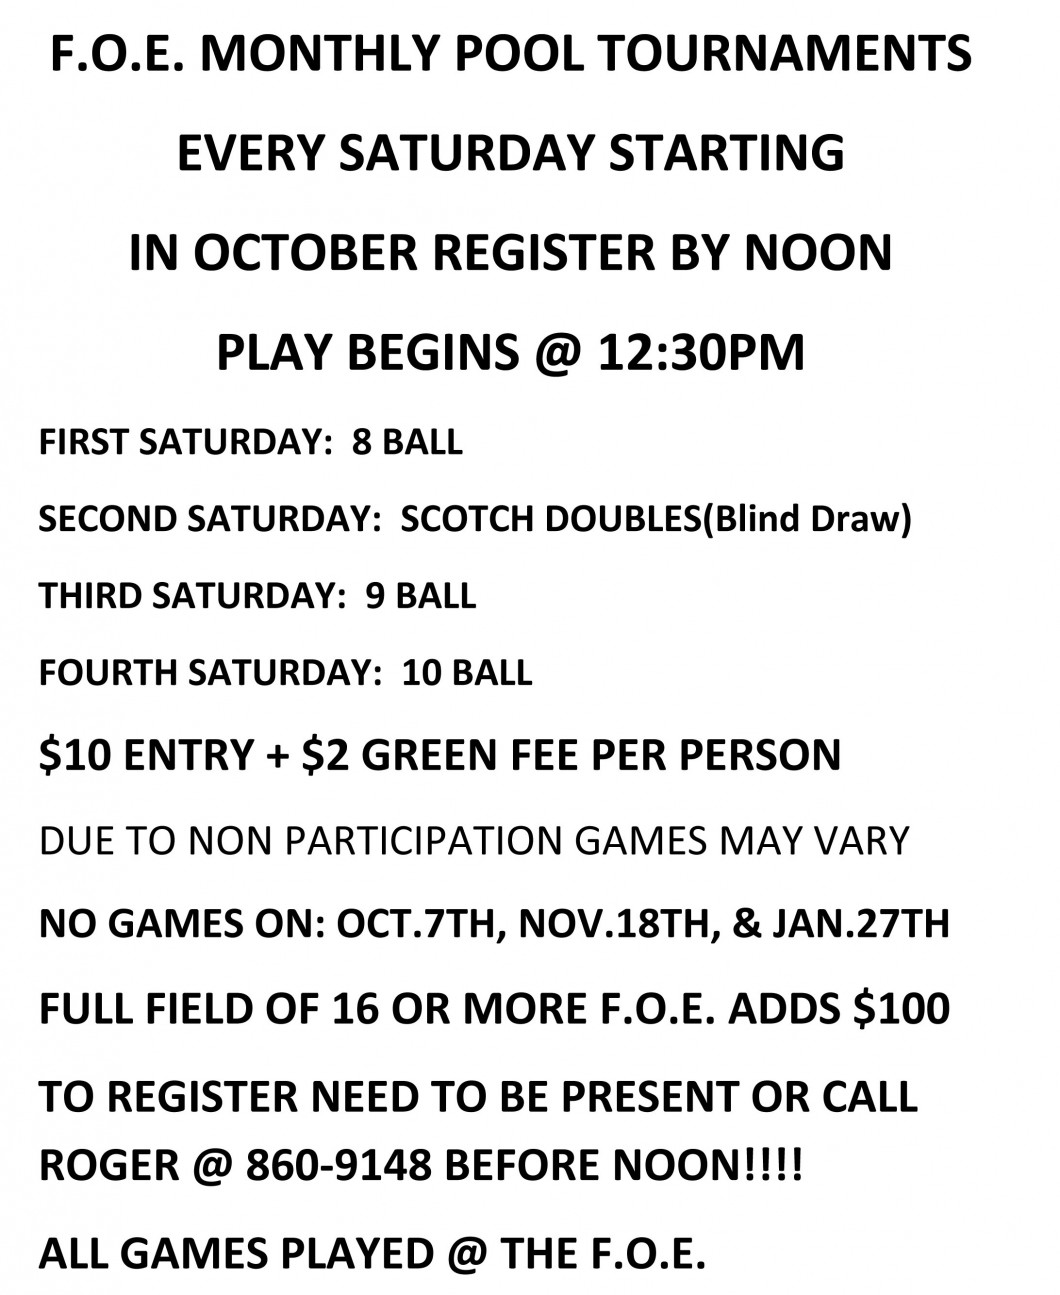 Monthly Pool Tournaments